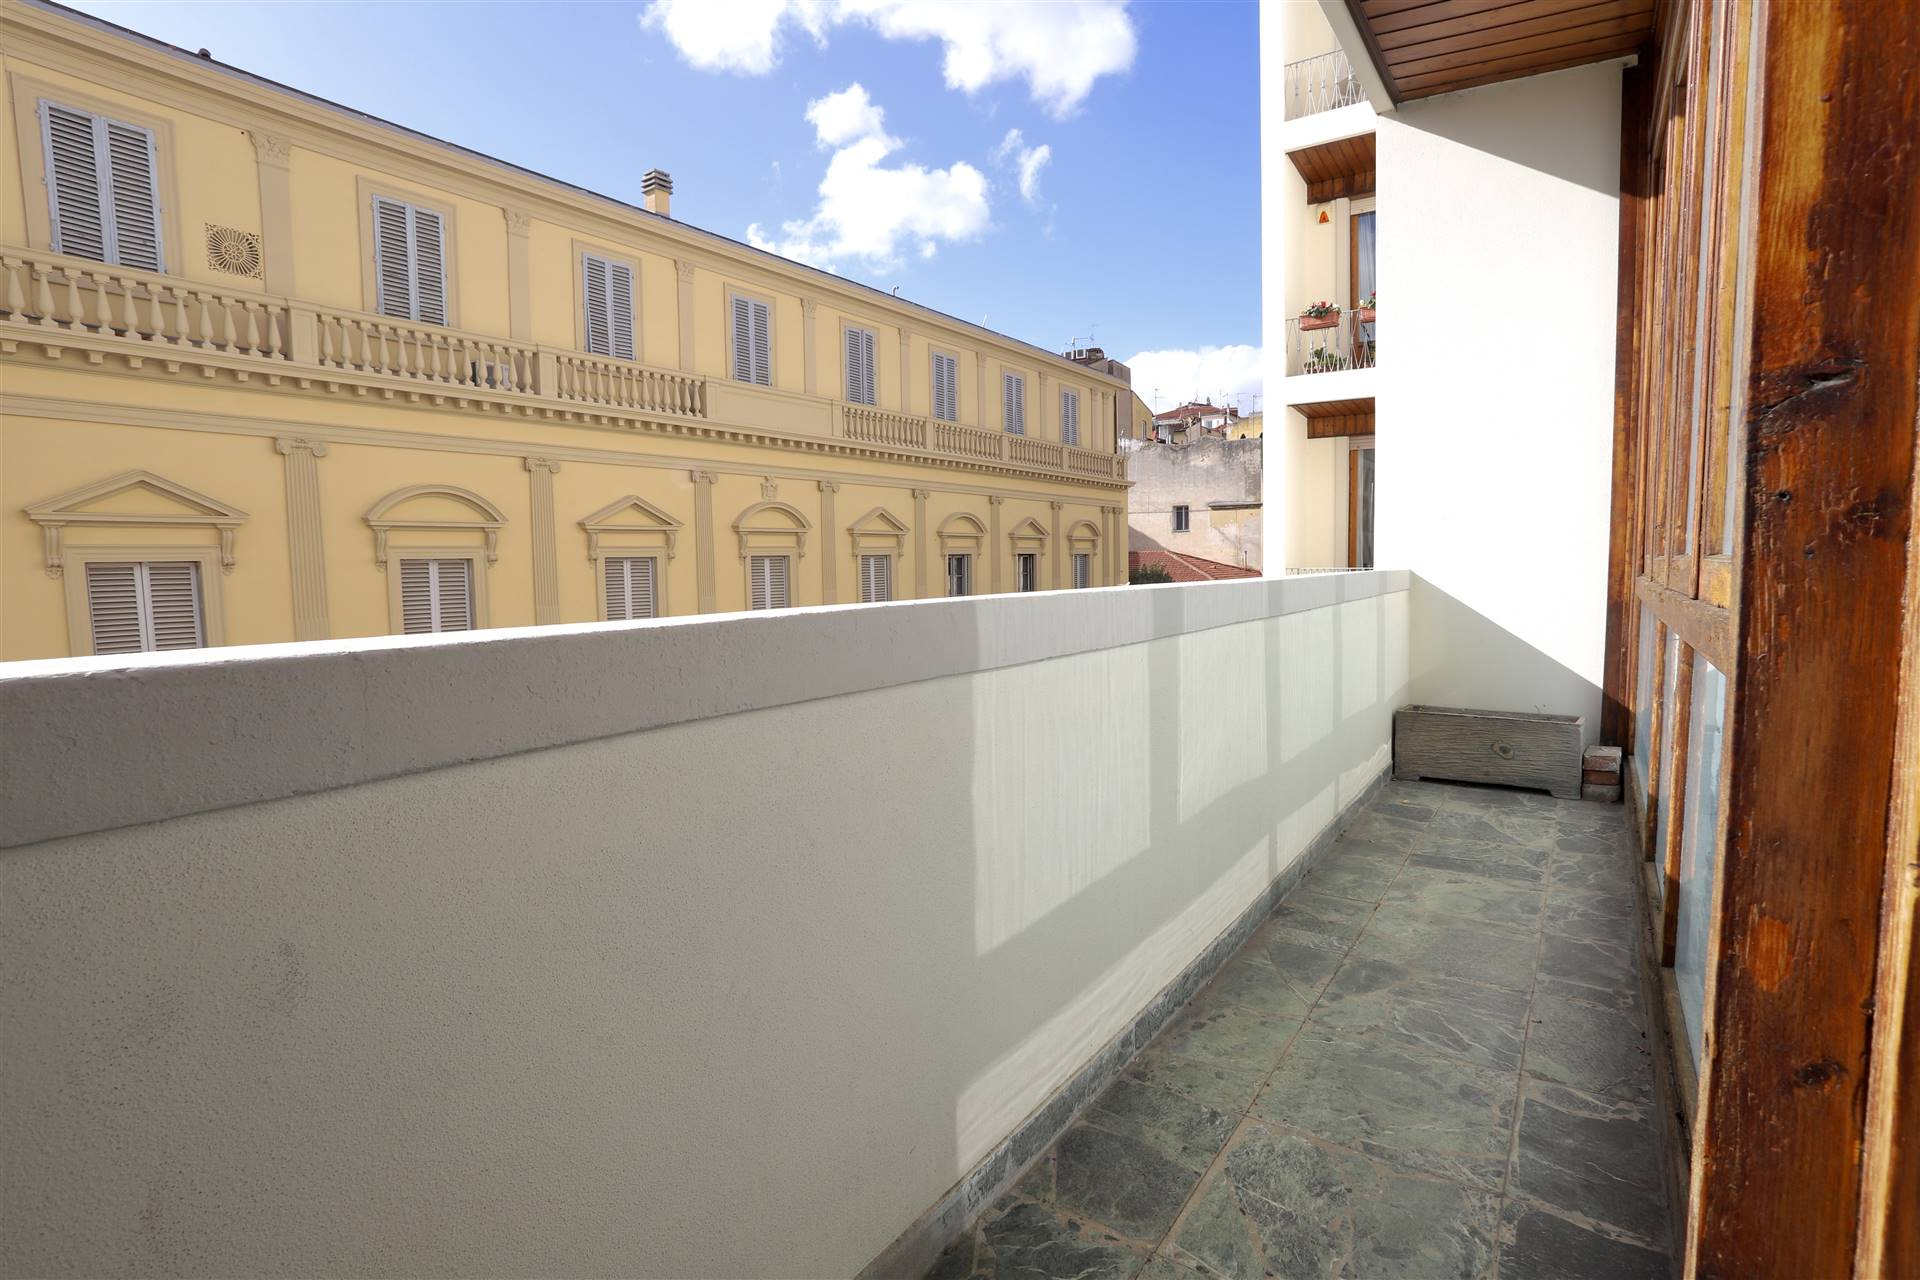 COMUNALE, FIRENZE, Apartment for sale of 210 Sq. mt., Good condition, Heating Individual heating system, Energetic class: G, placed at 2°, composed